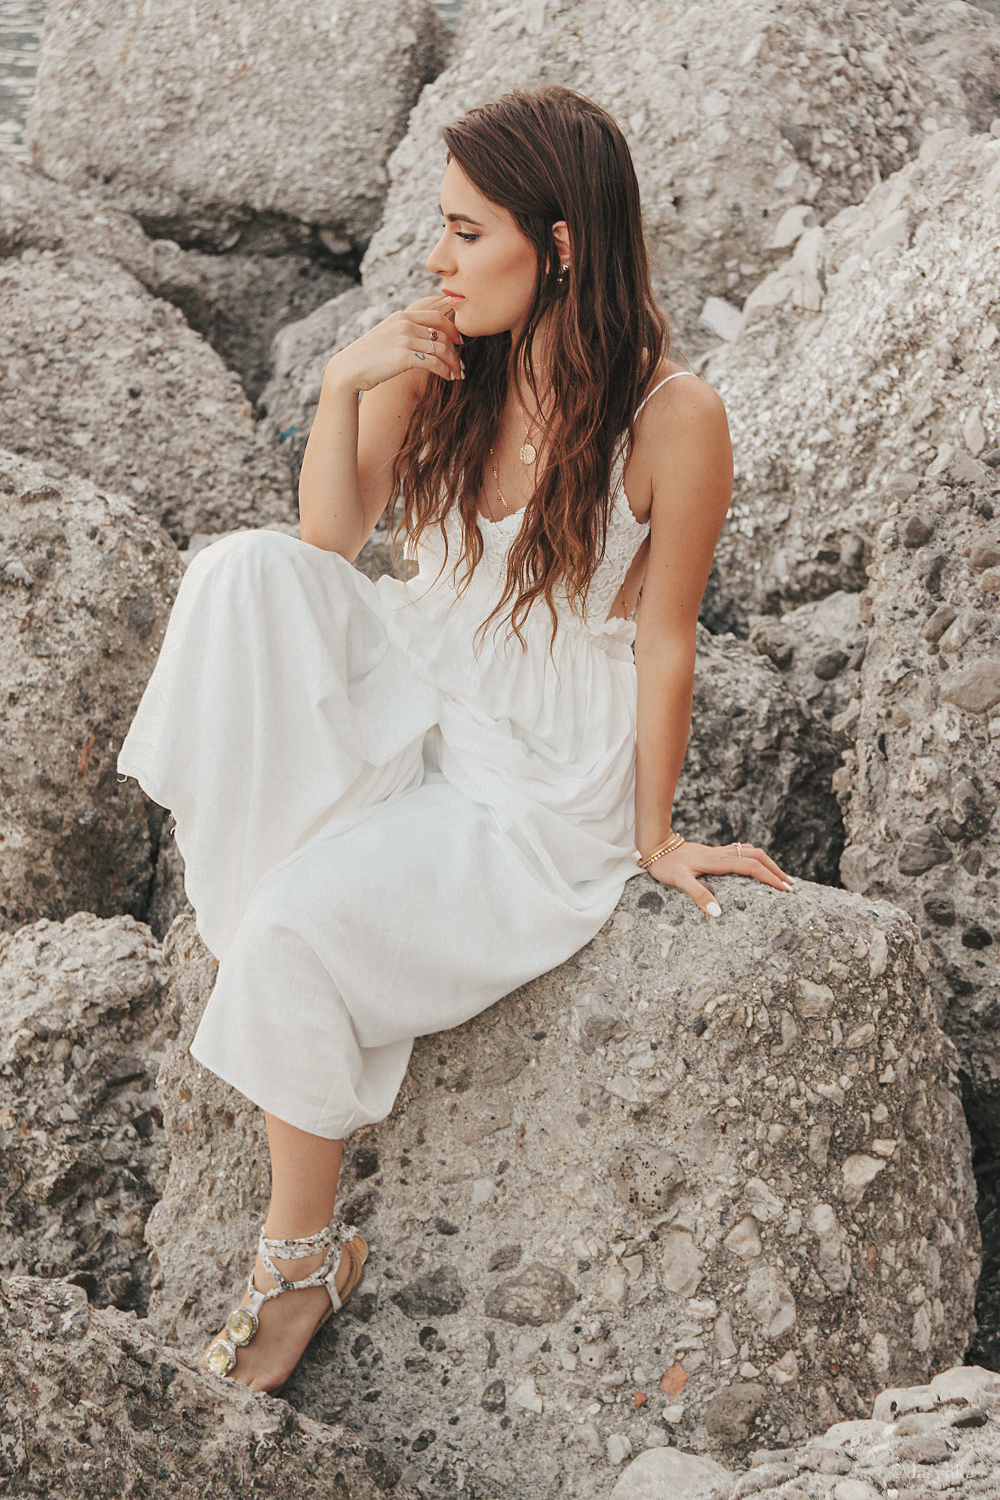 dasynka-fashion-blog-blogger-influencer-inspiration-shooting-model-globettrotter-travel-girl-lookbook-instagram-long-hair-street-style-casual-italy-lifestyle-outfit-poses-atrani-amalfi-coast-sea-summer-dress-maxi-white-mermaid-body-jewelry-chloe-bag-beach-sunset-positano-look-luxury-gold-inspo-ocean-shoot-instagrammer-anchor